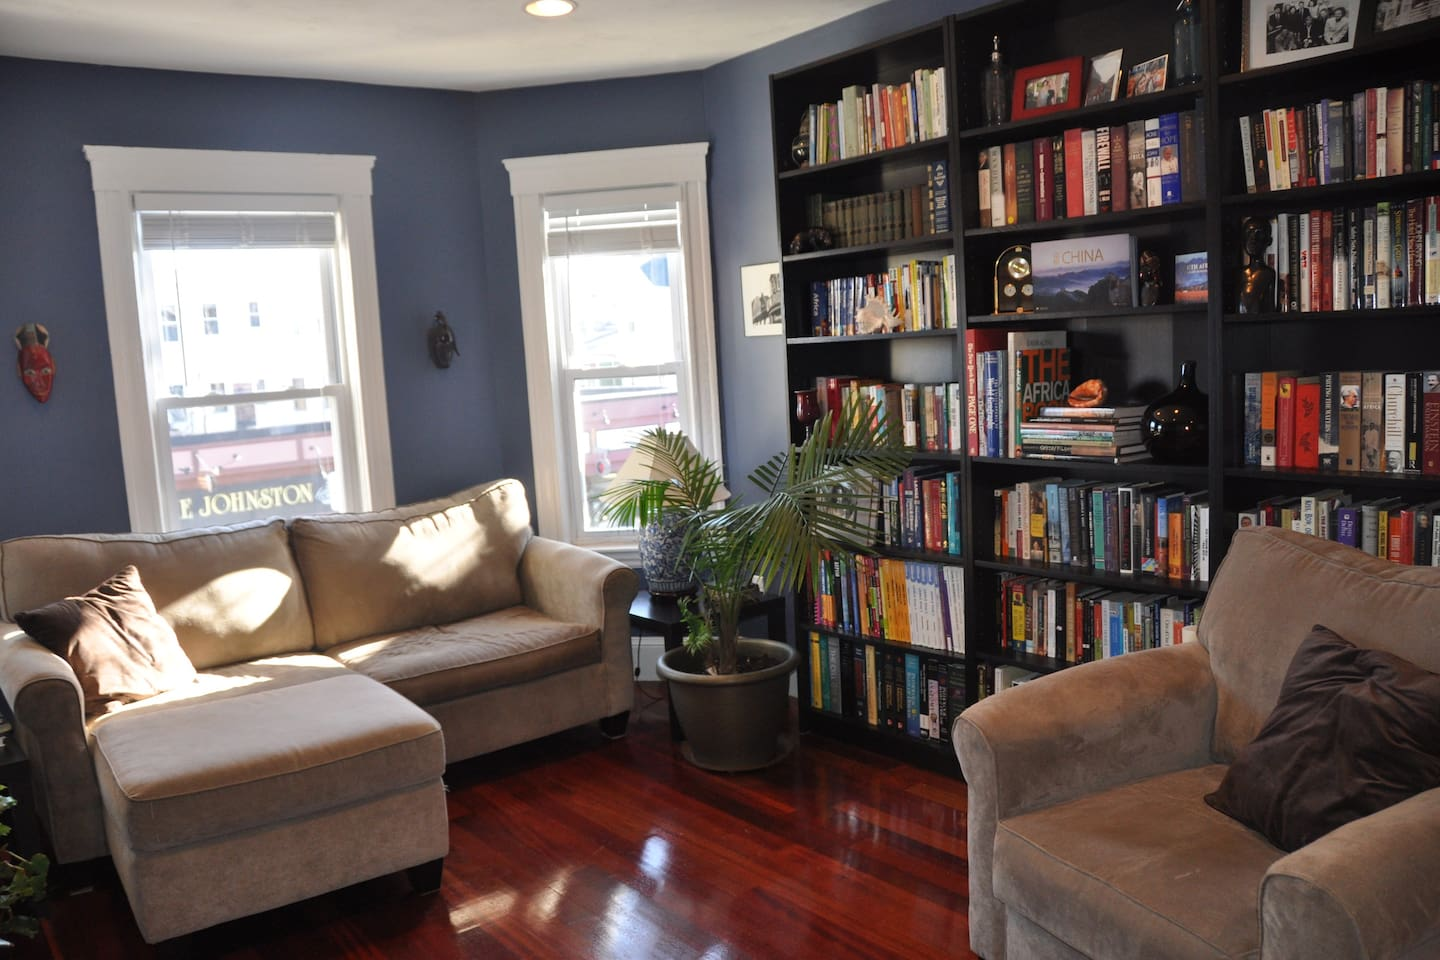 Living room with large library of books to peruse